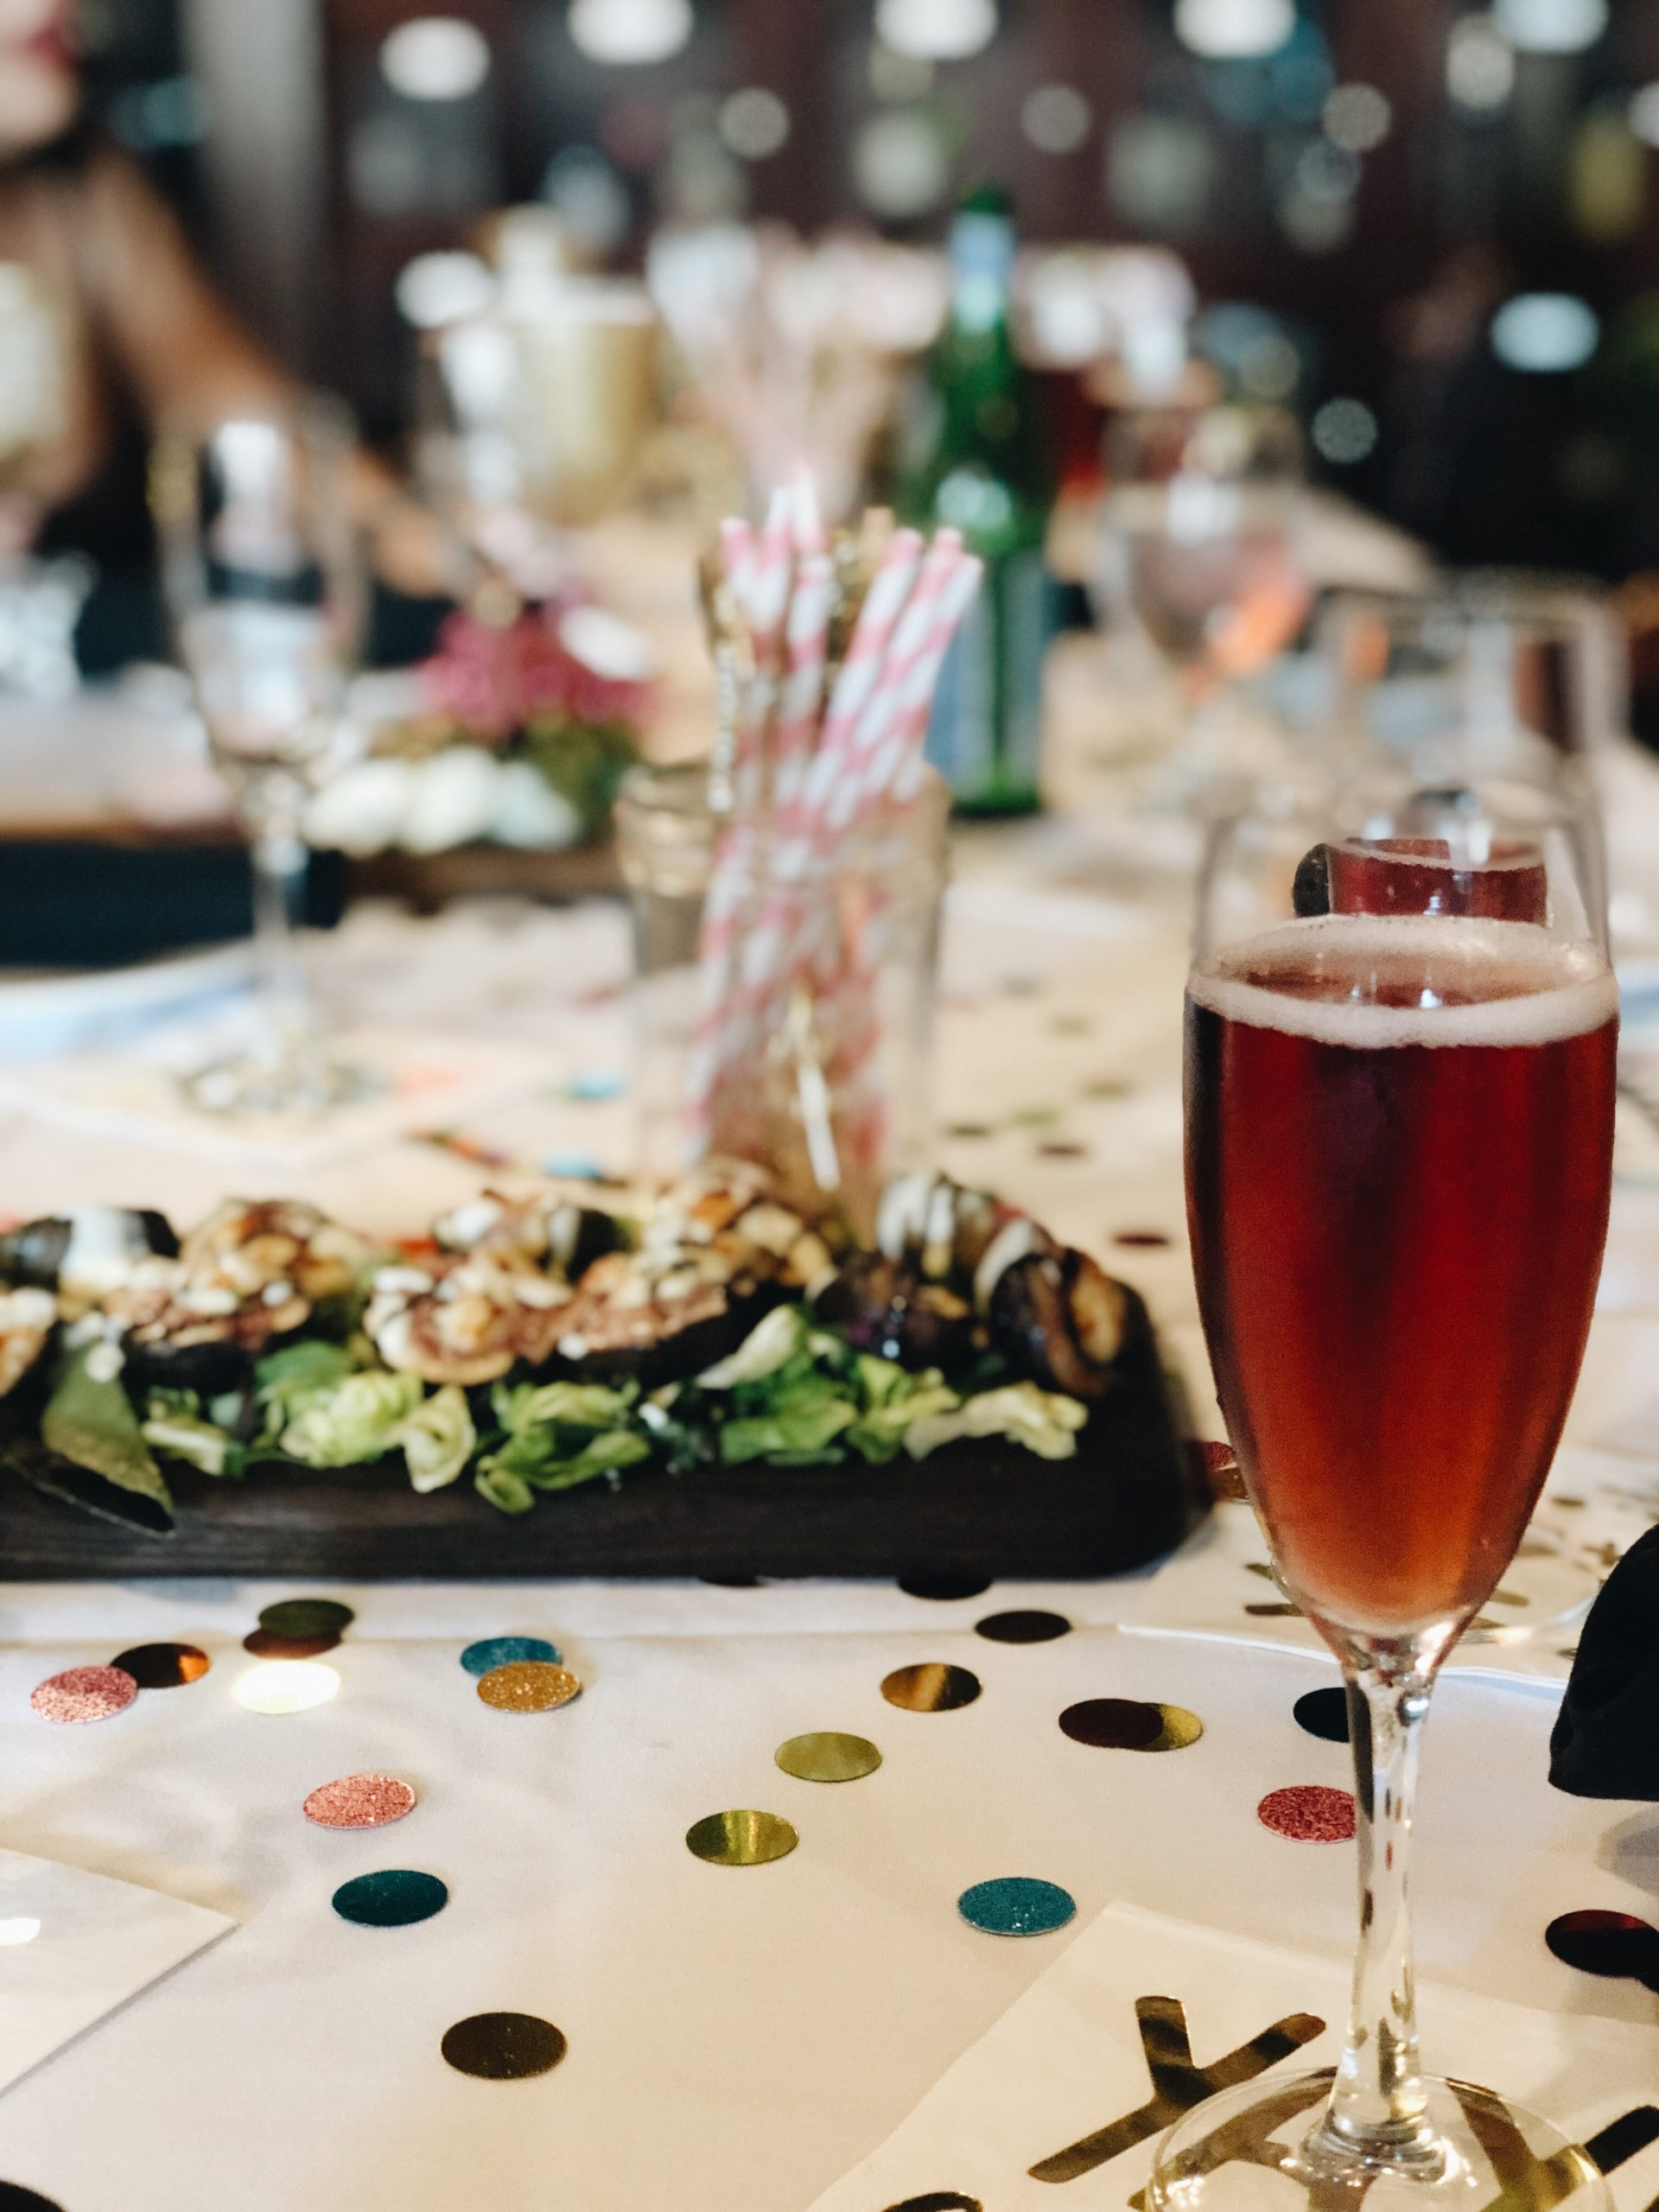 Glass of Rose Brut, table setting, confetti, party decor